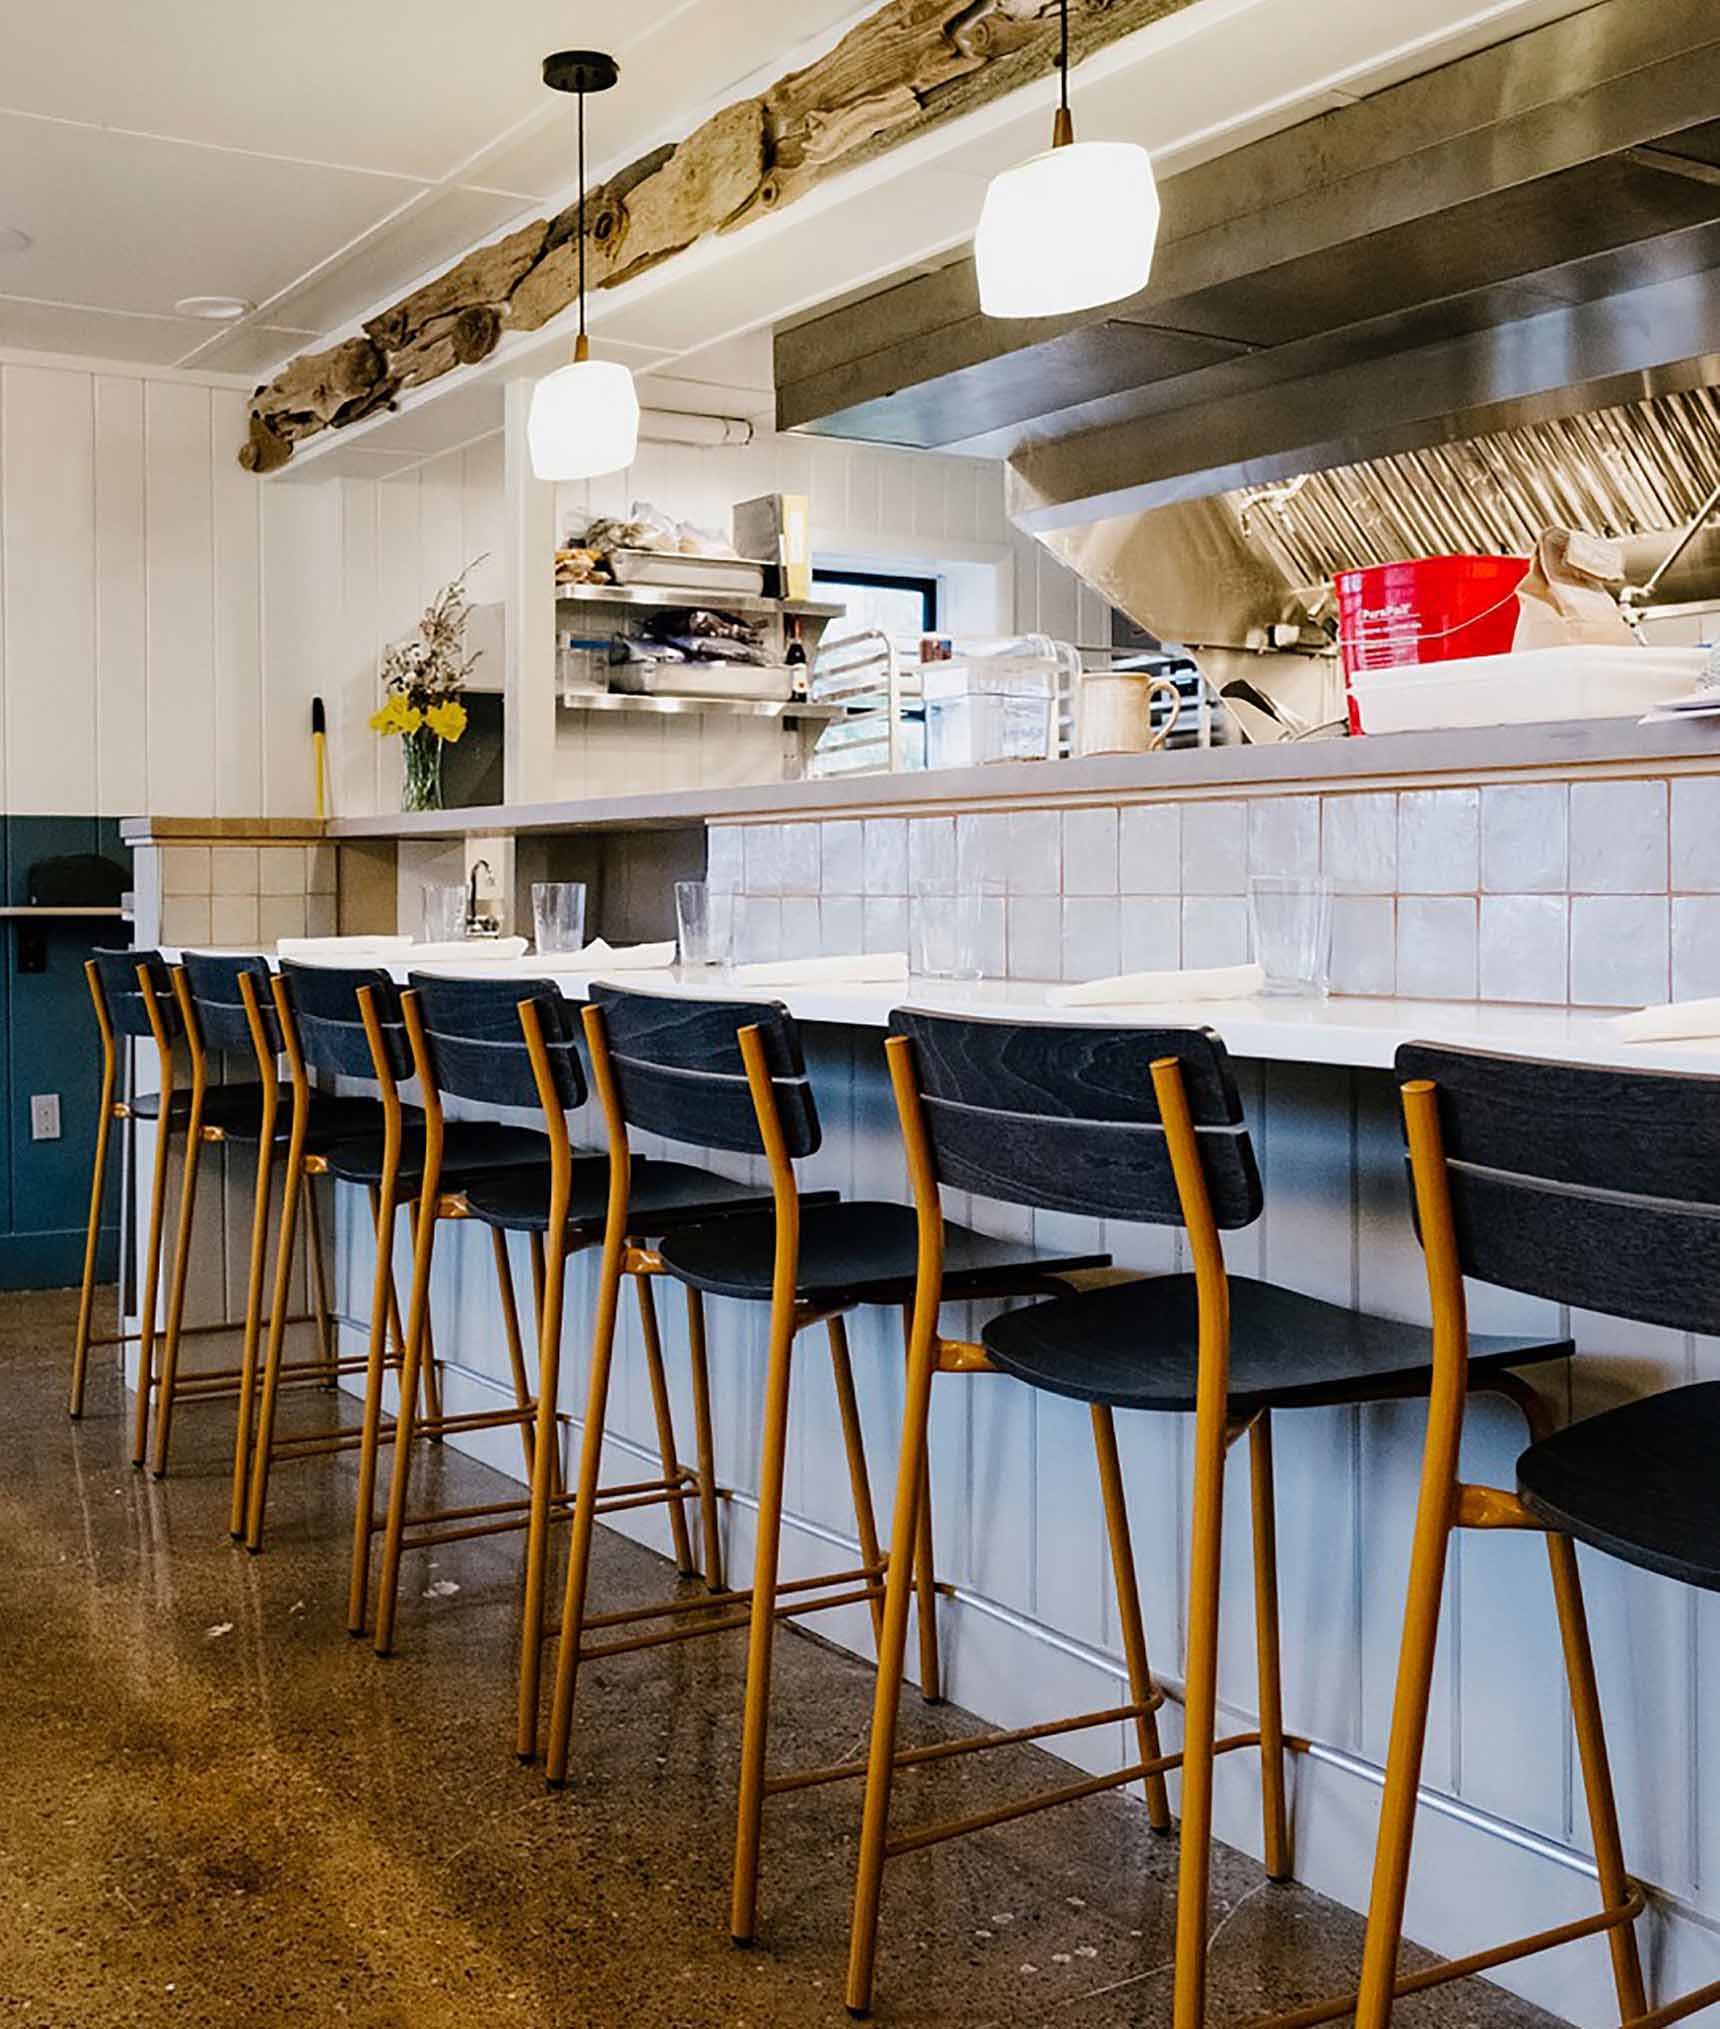 Pennyroyal Cafe and Provisions